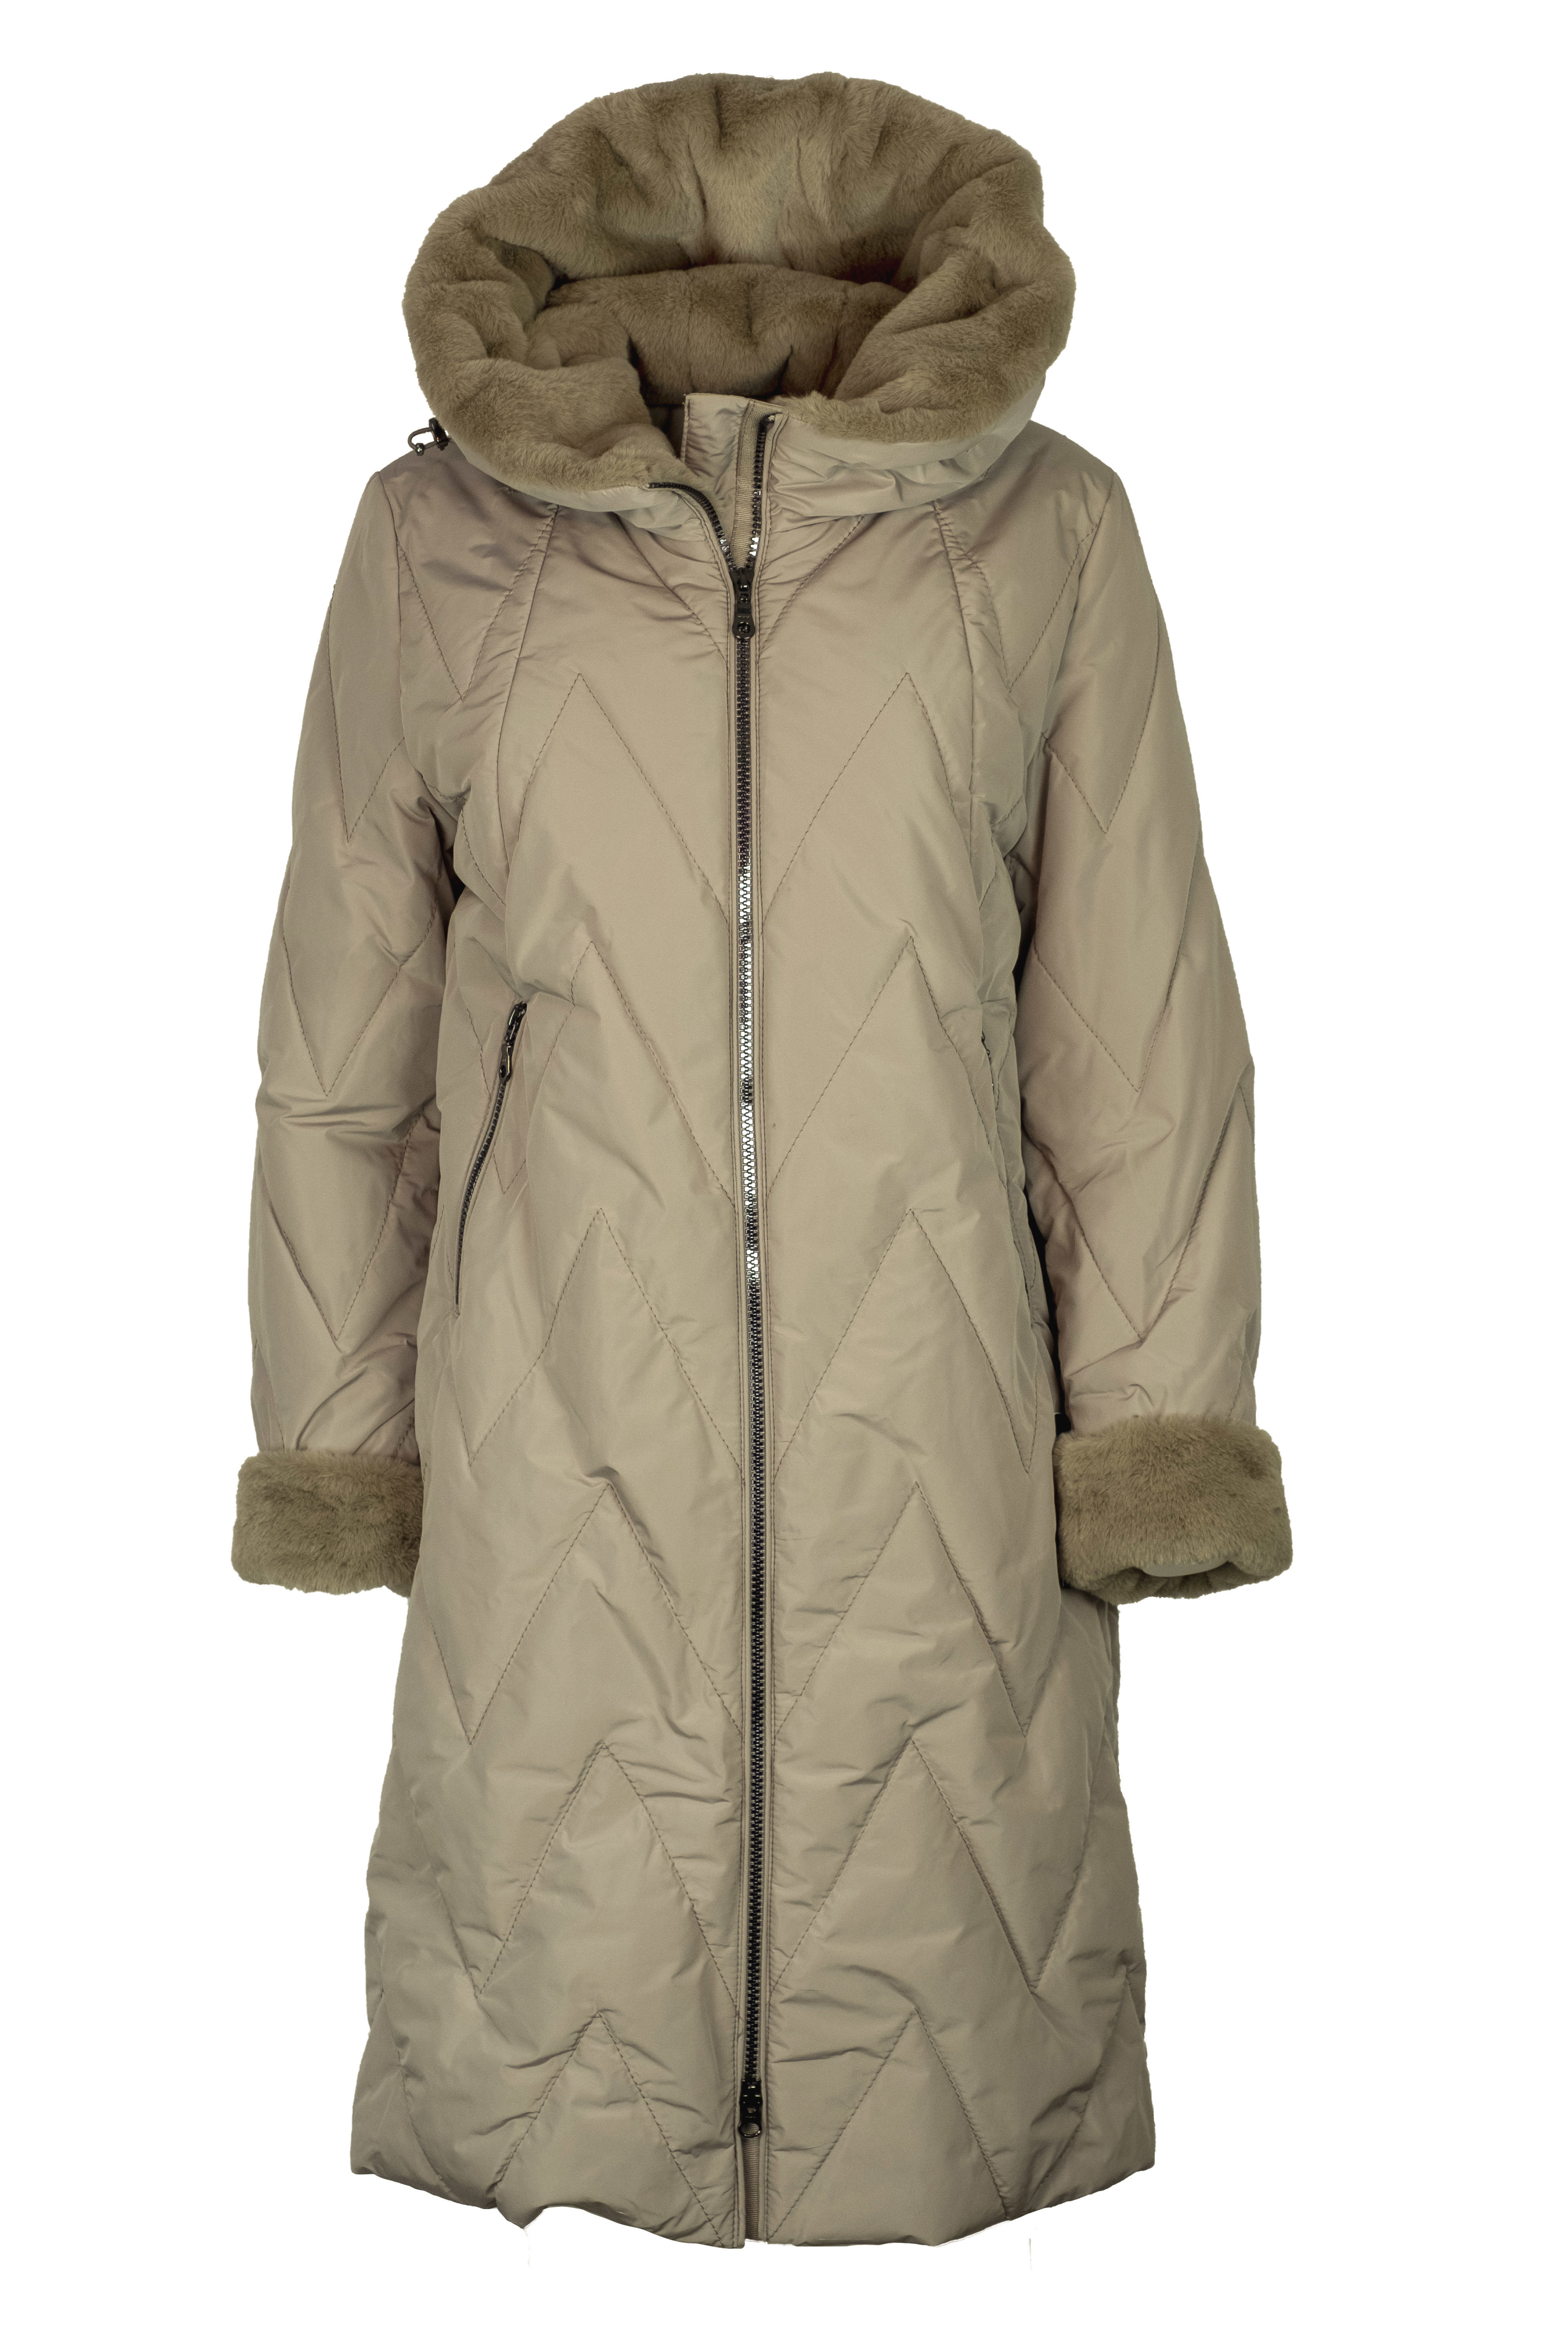 Flare Collection winterjas 3155 Sand